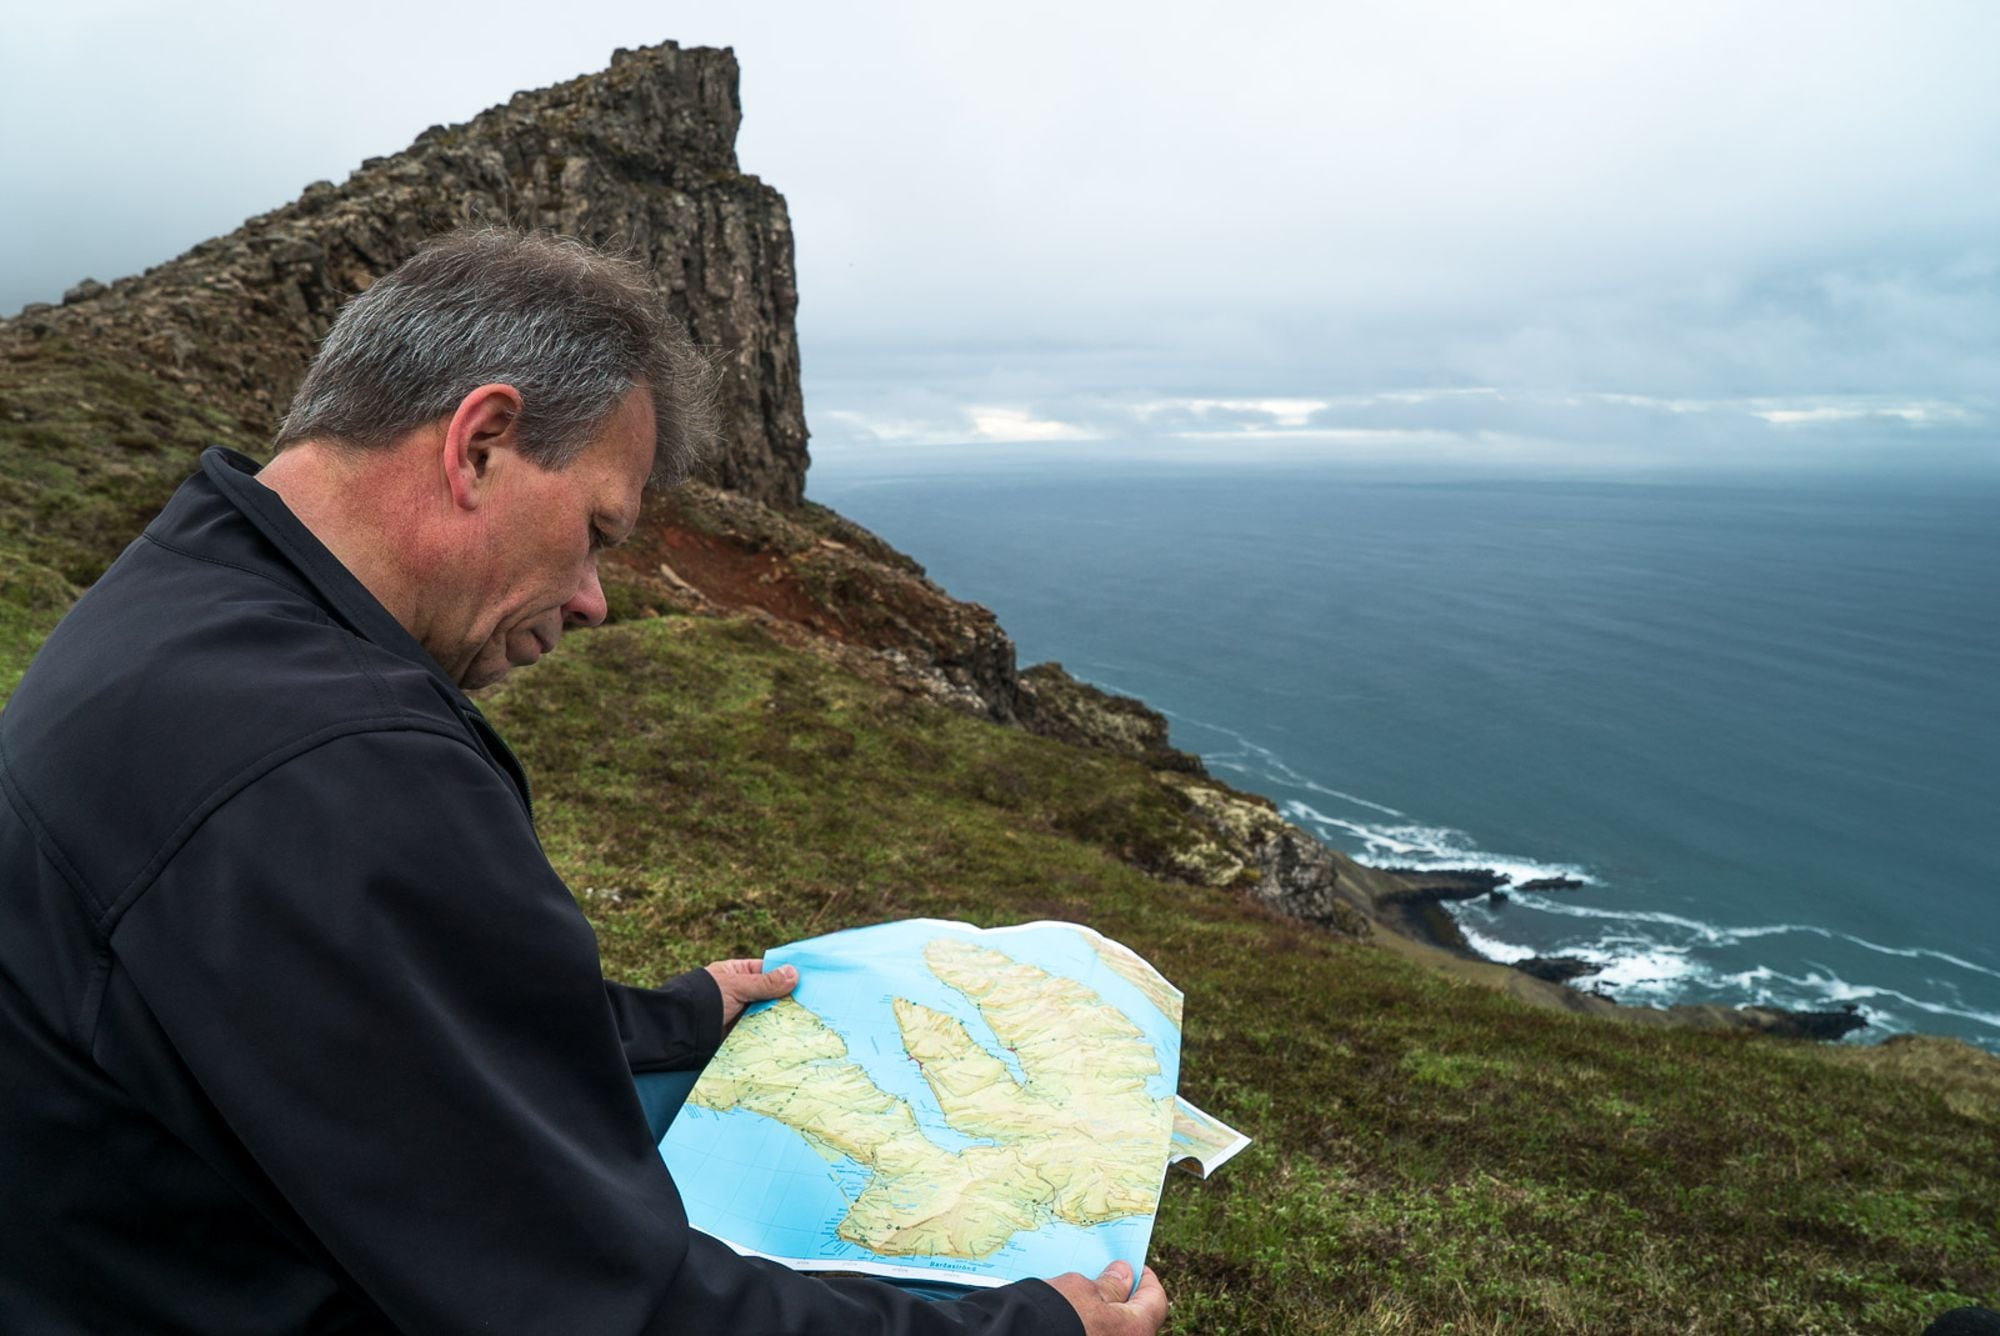 Kjartan reading the map